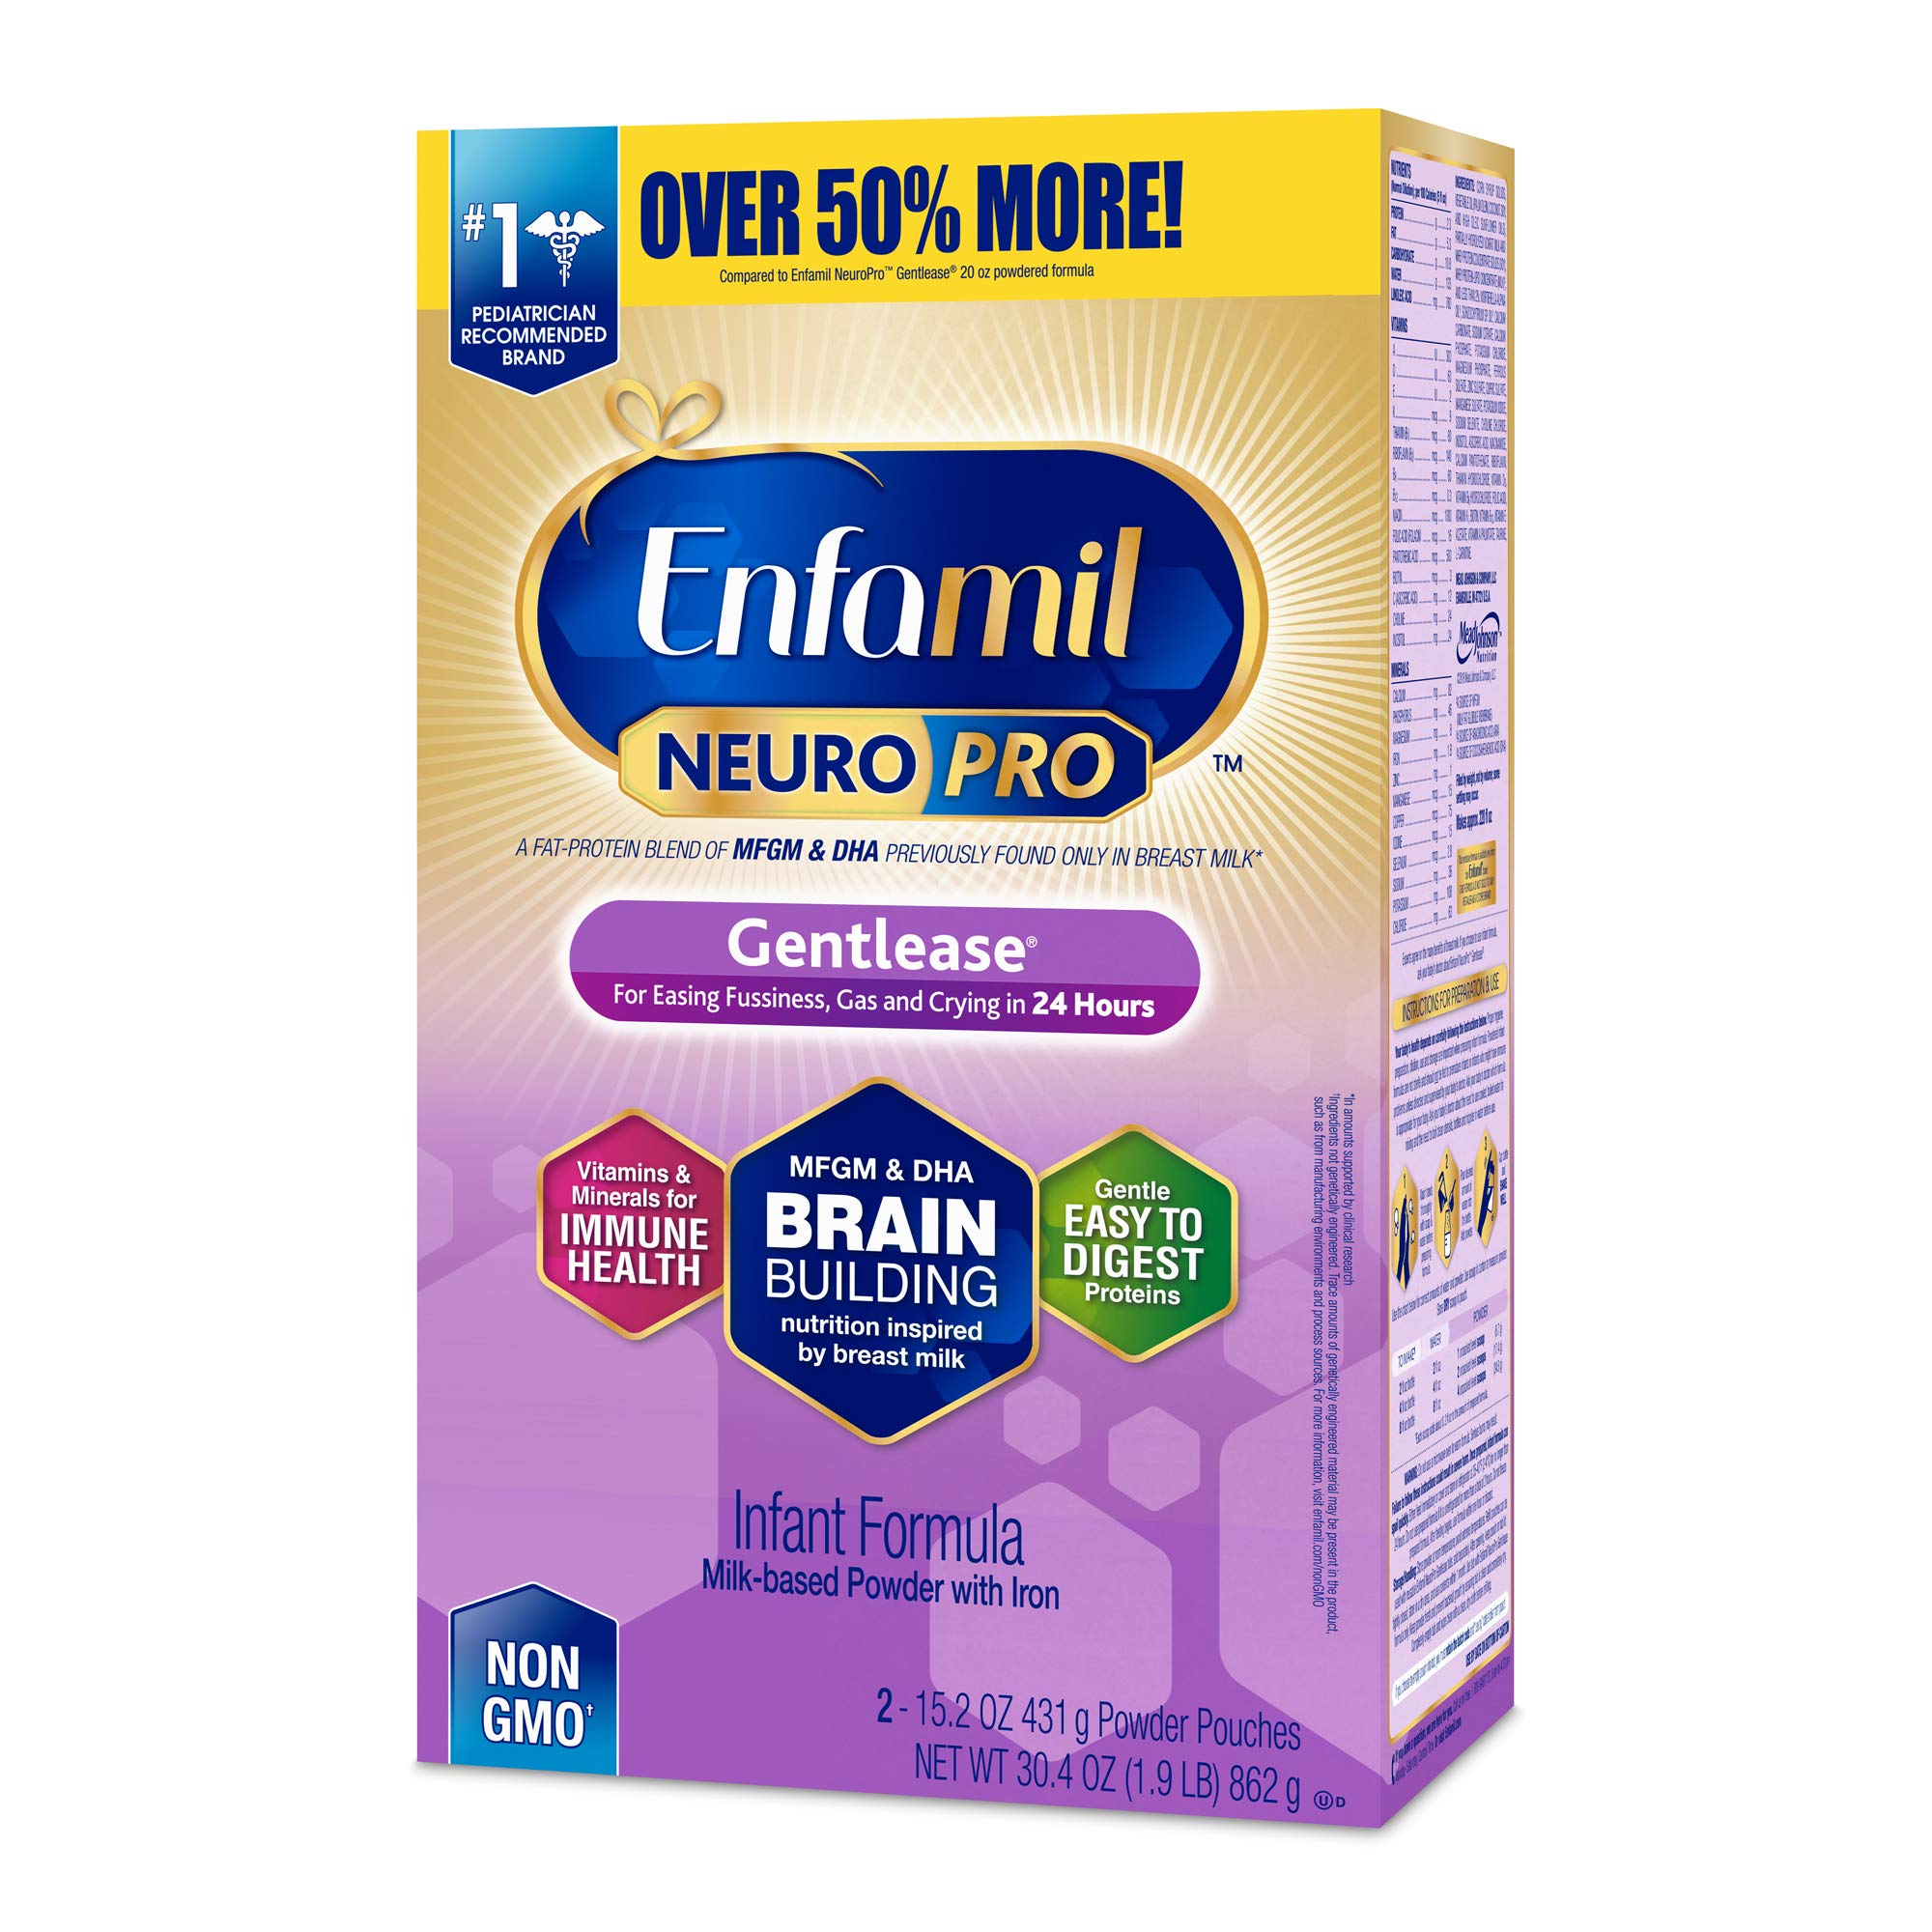 Enfamil NeuroPro Gentlease Infant Formula - Clinically Proven to reduce fussiness, gas, crying in 24 hours - Brain Building Nutrition Inspired by breast milk - Powder Refill Box, 30.4 oz by Enfamil (Image #1)